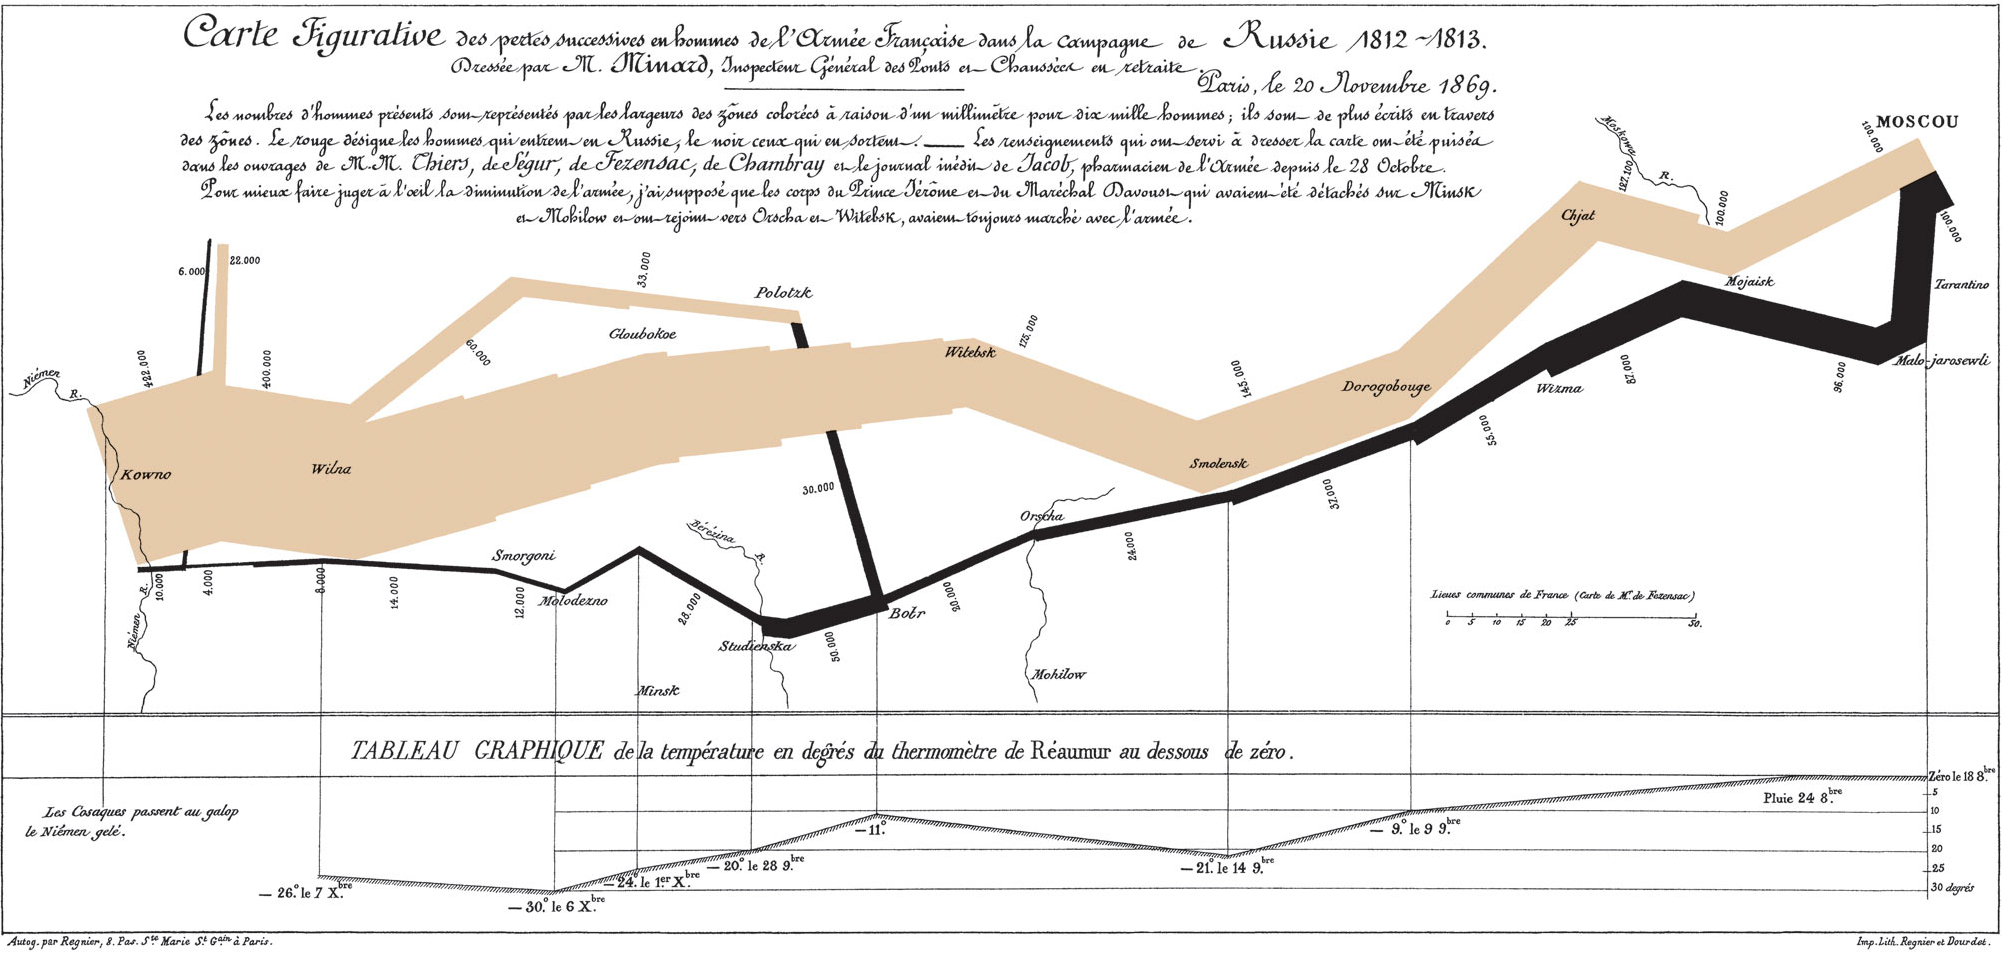 Minard's flow map of Napolean's march